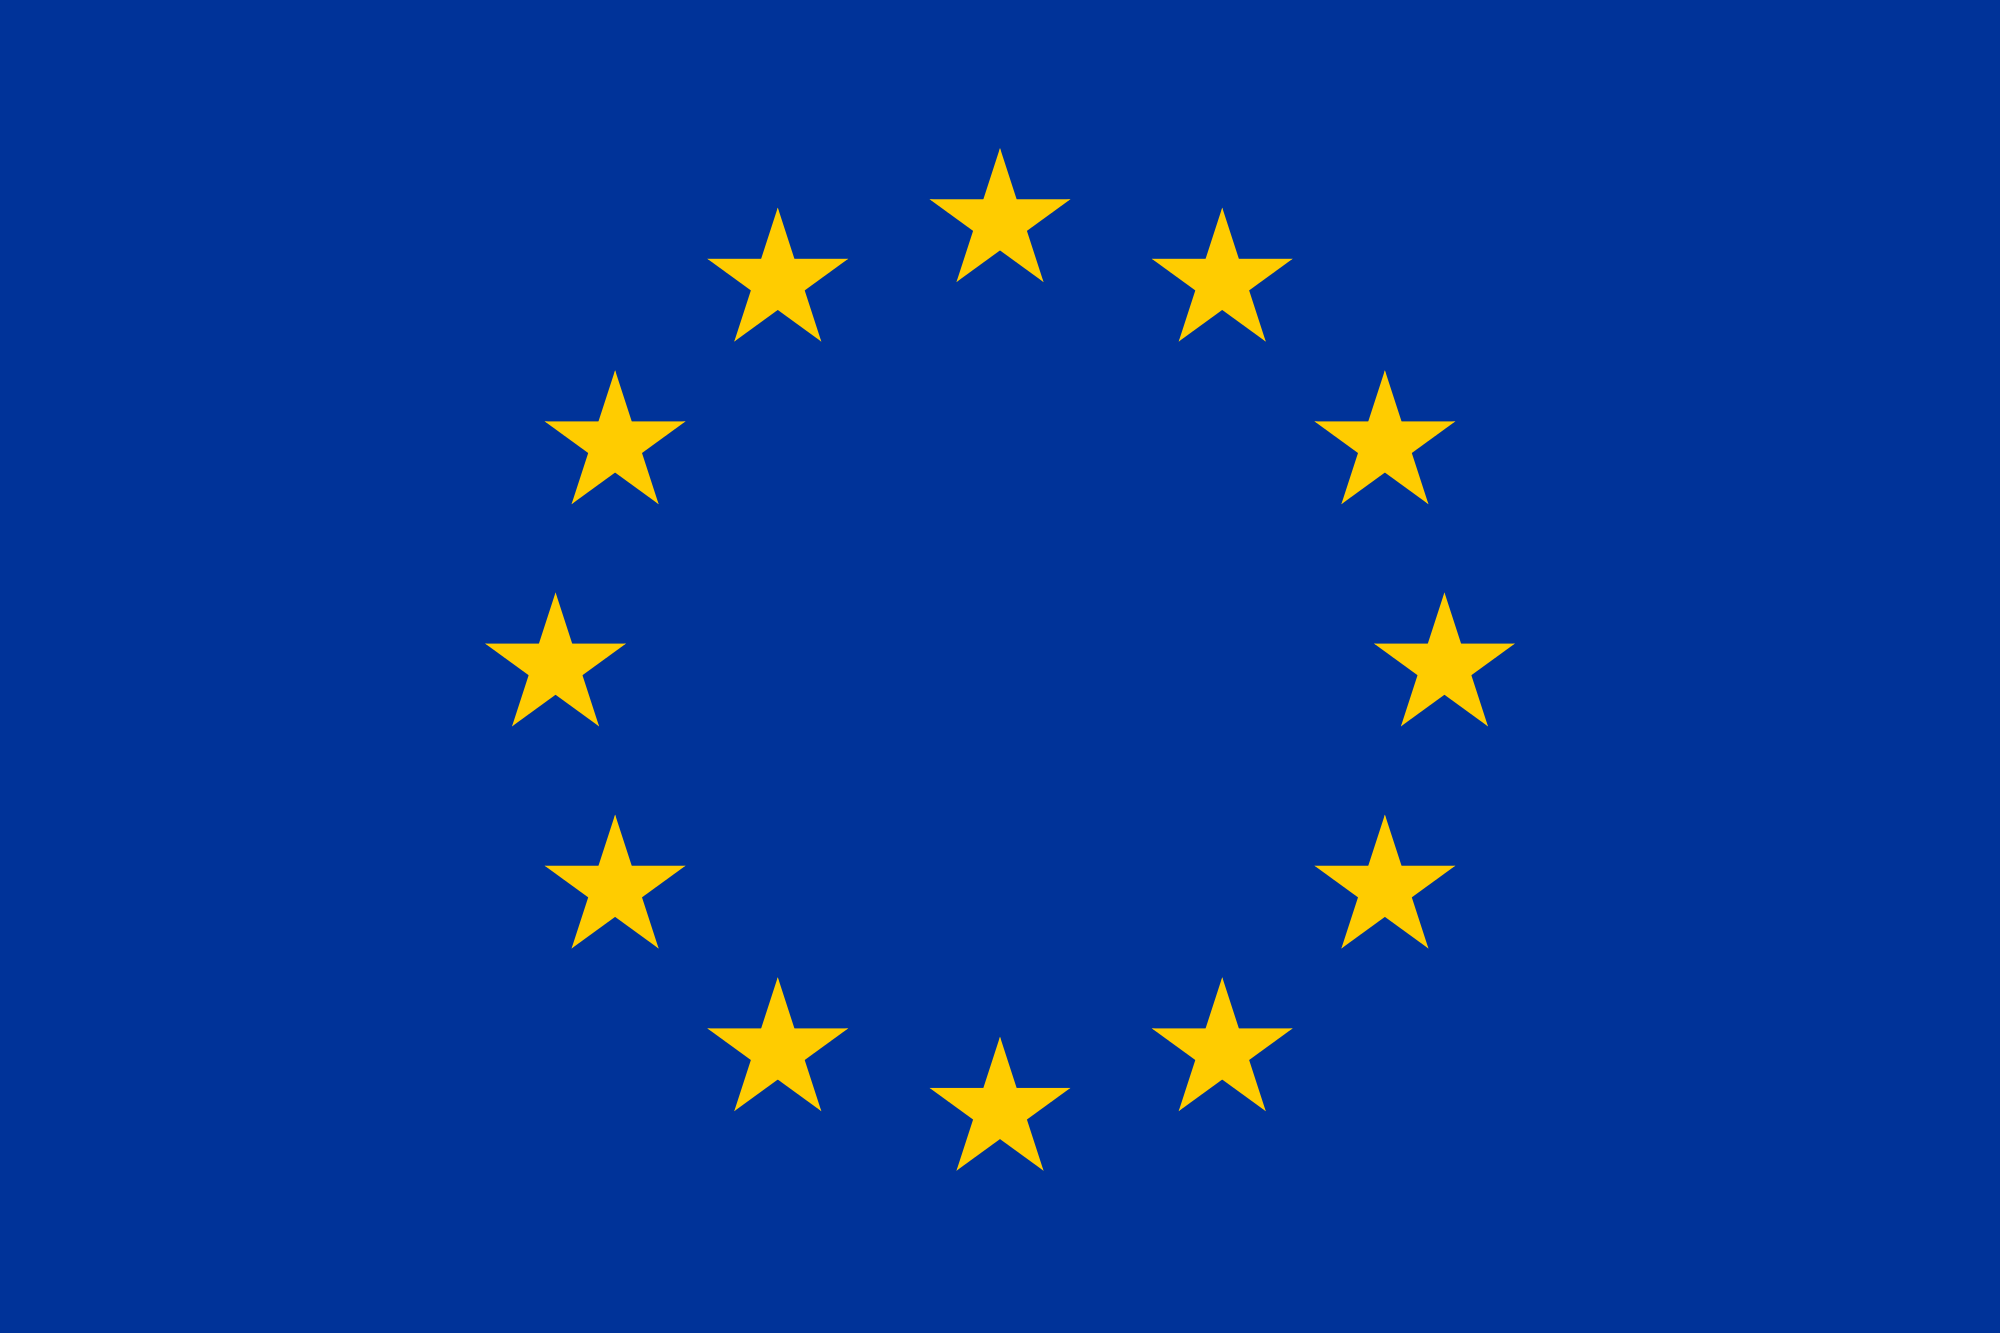 Flag_of_Europe-svg